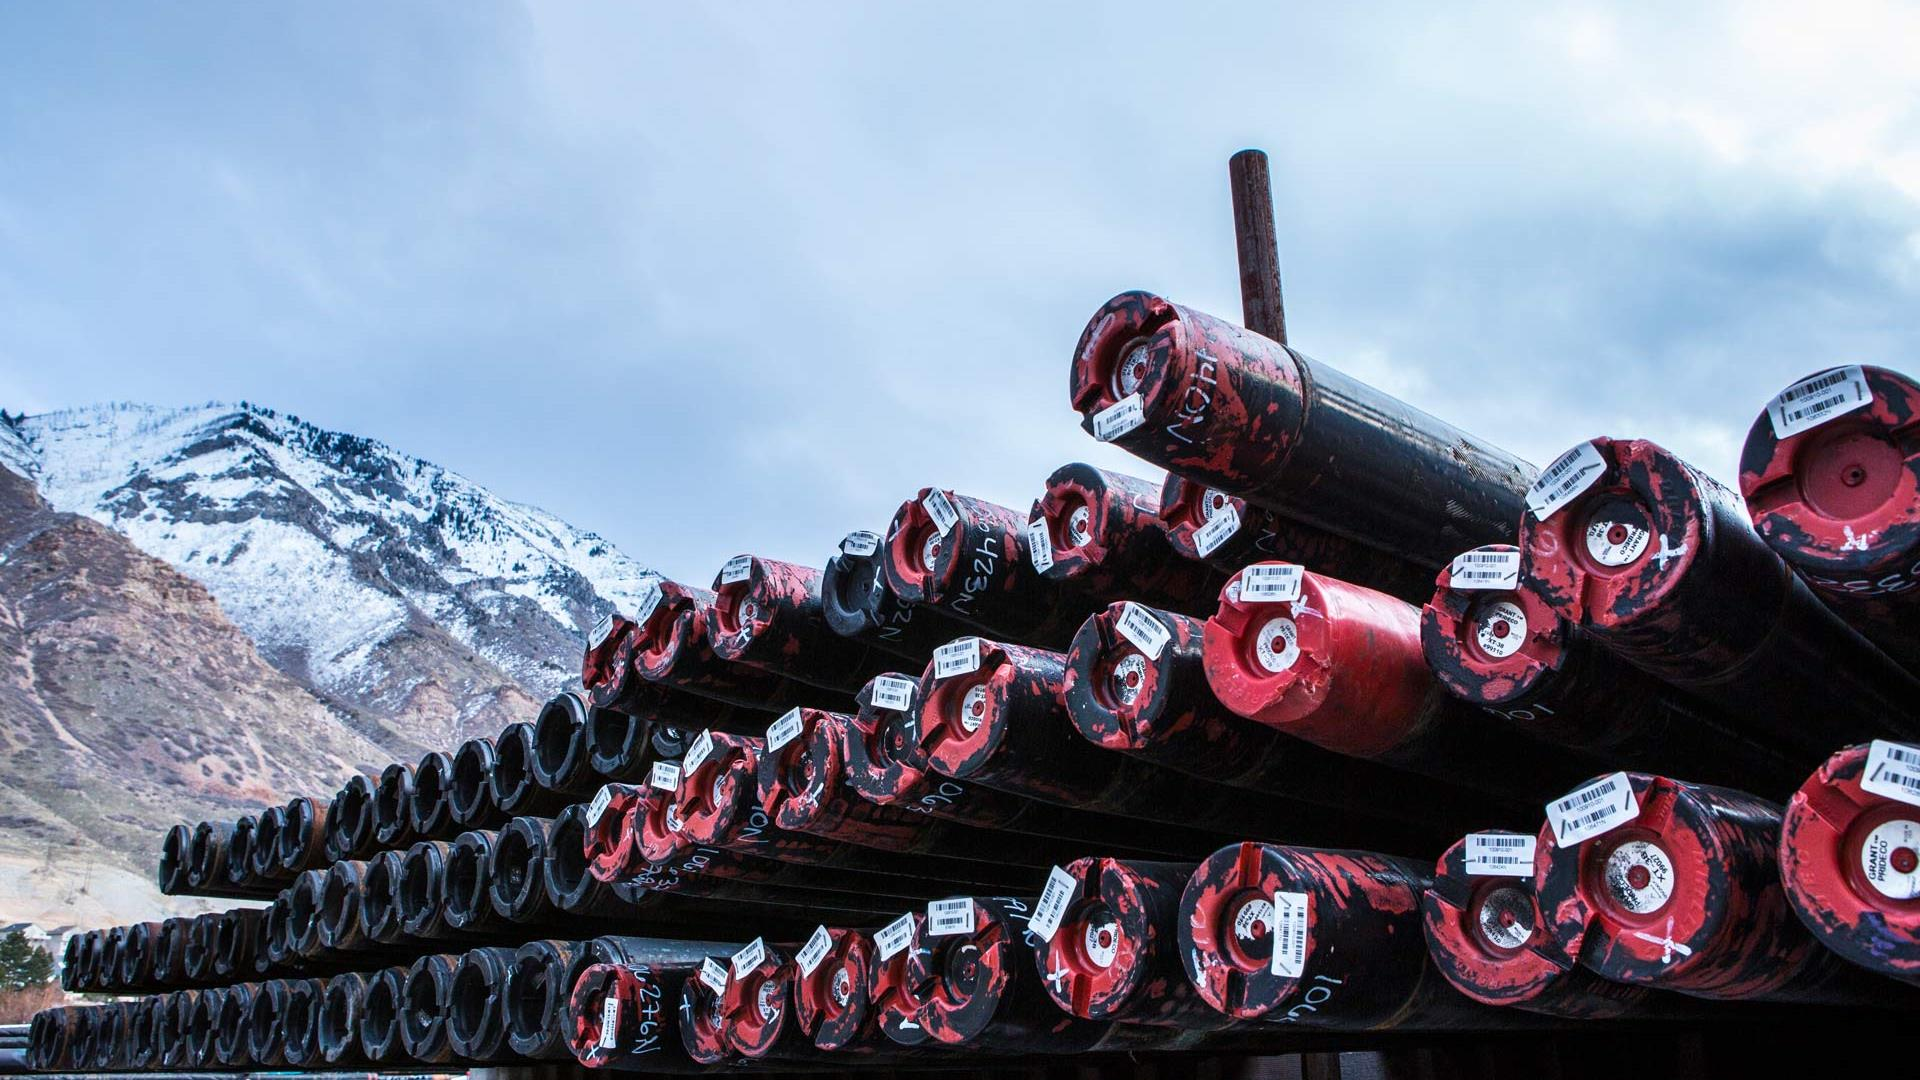 sour service products drill pipe side view in snow